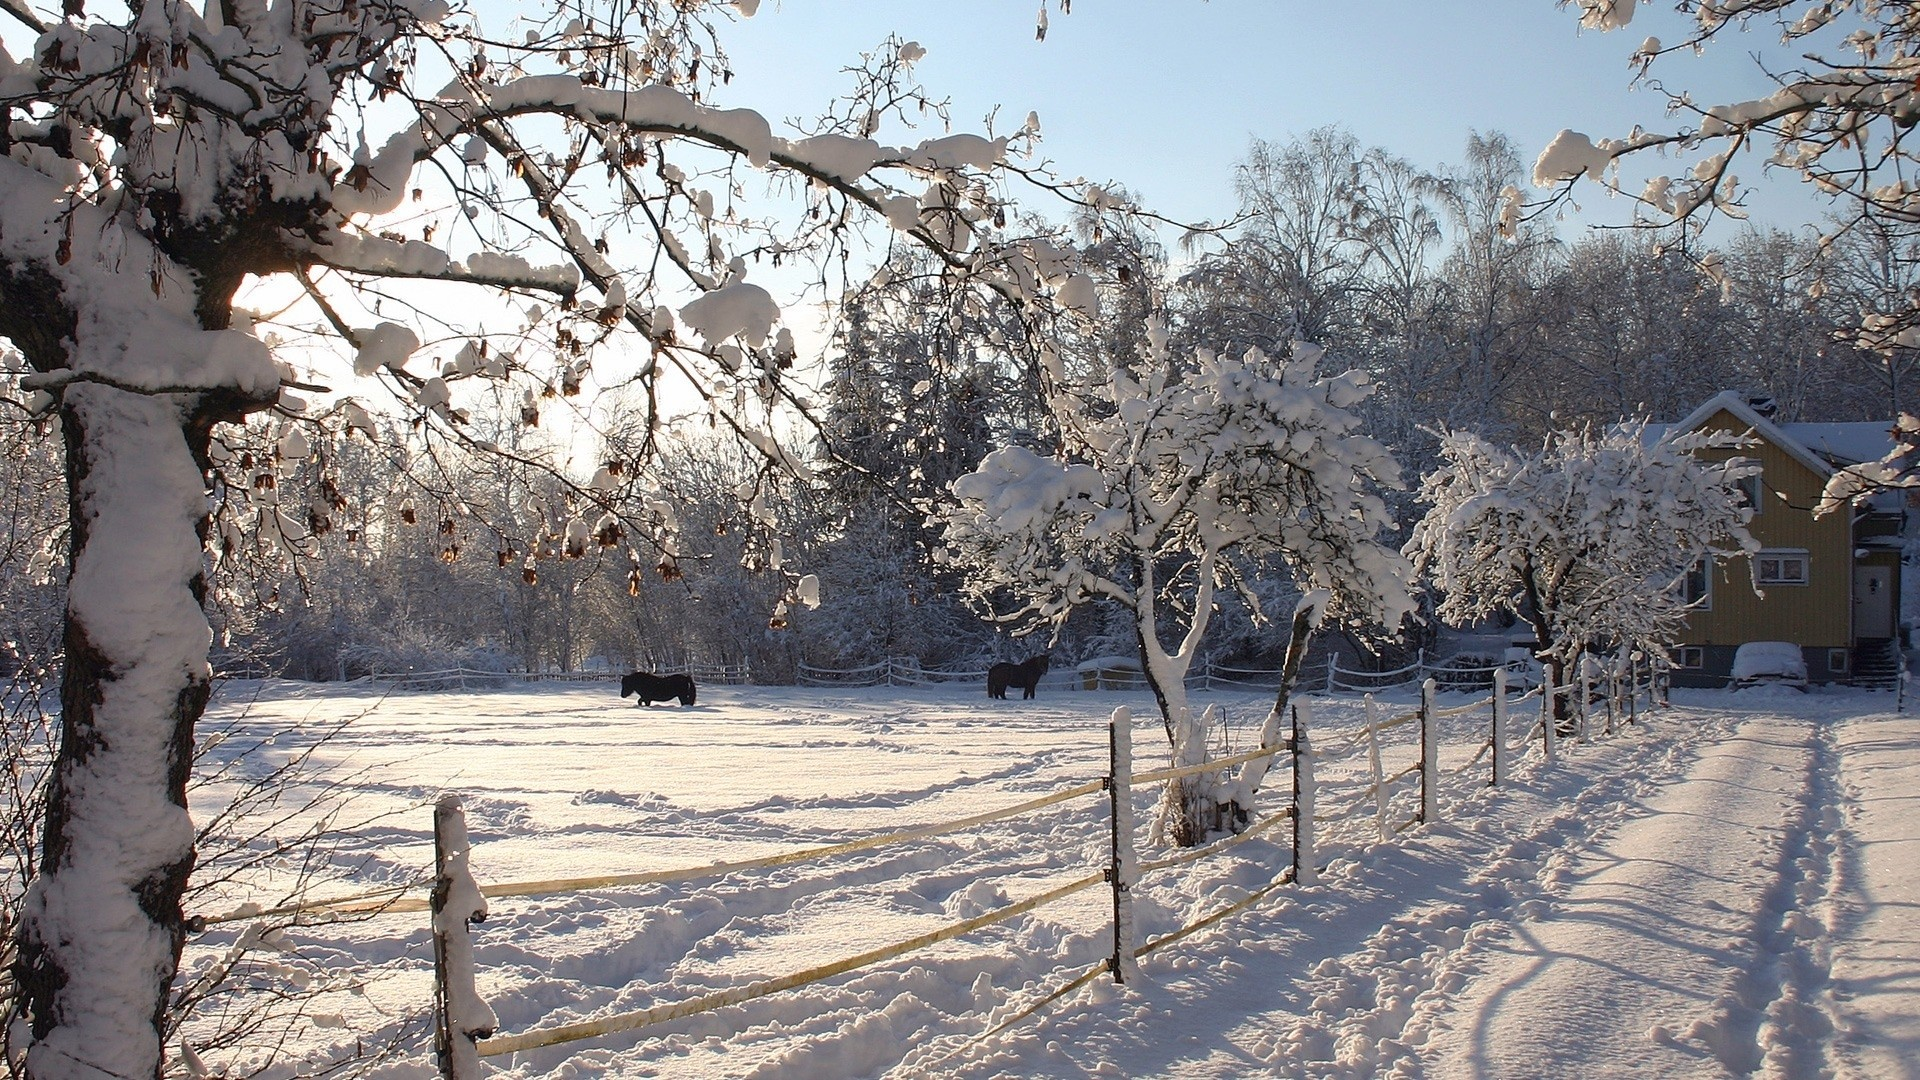 Get the latest horses, shelter, snow news, pictures and videos and learn  all about horses, shelter, snow from wallpapers4u.org, your wallpaper news  source.